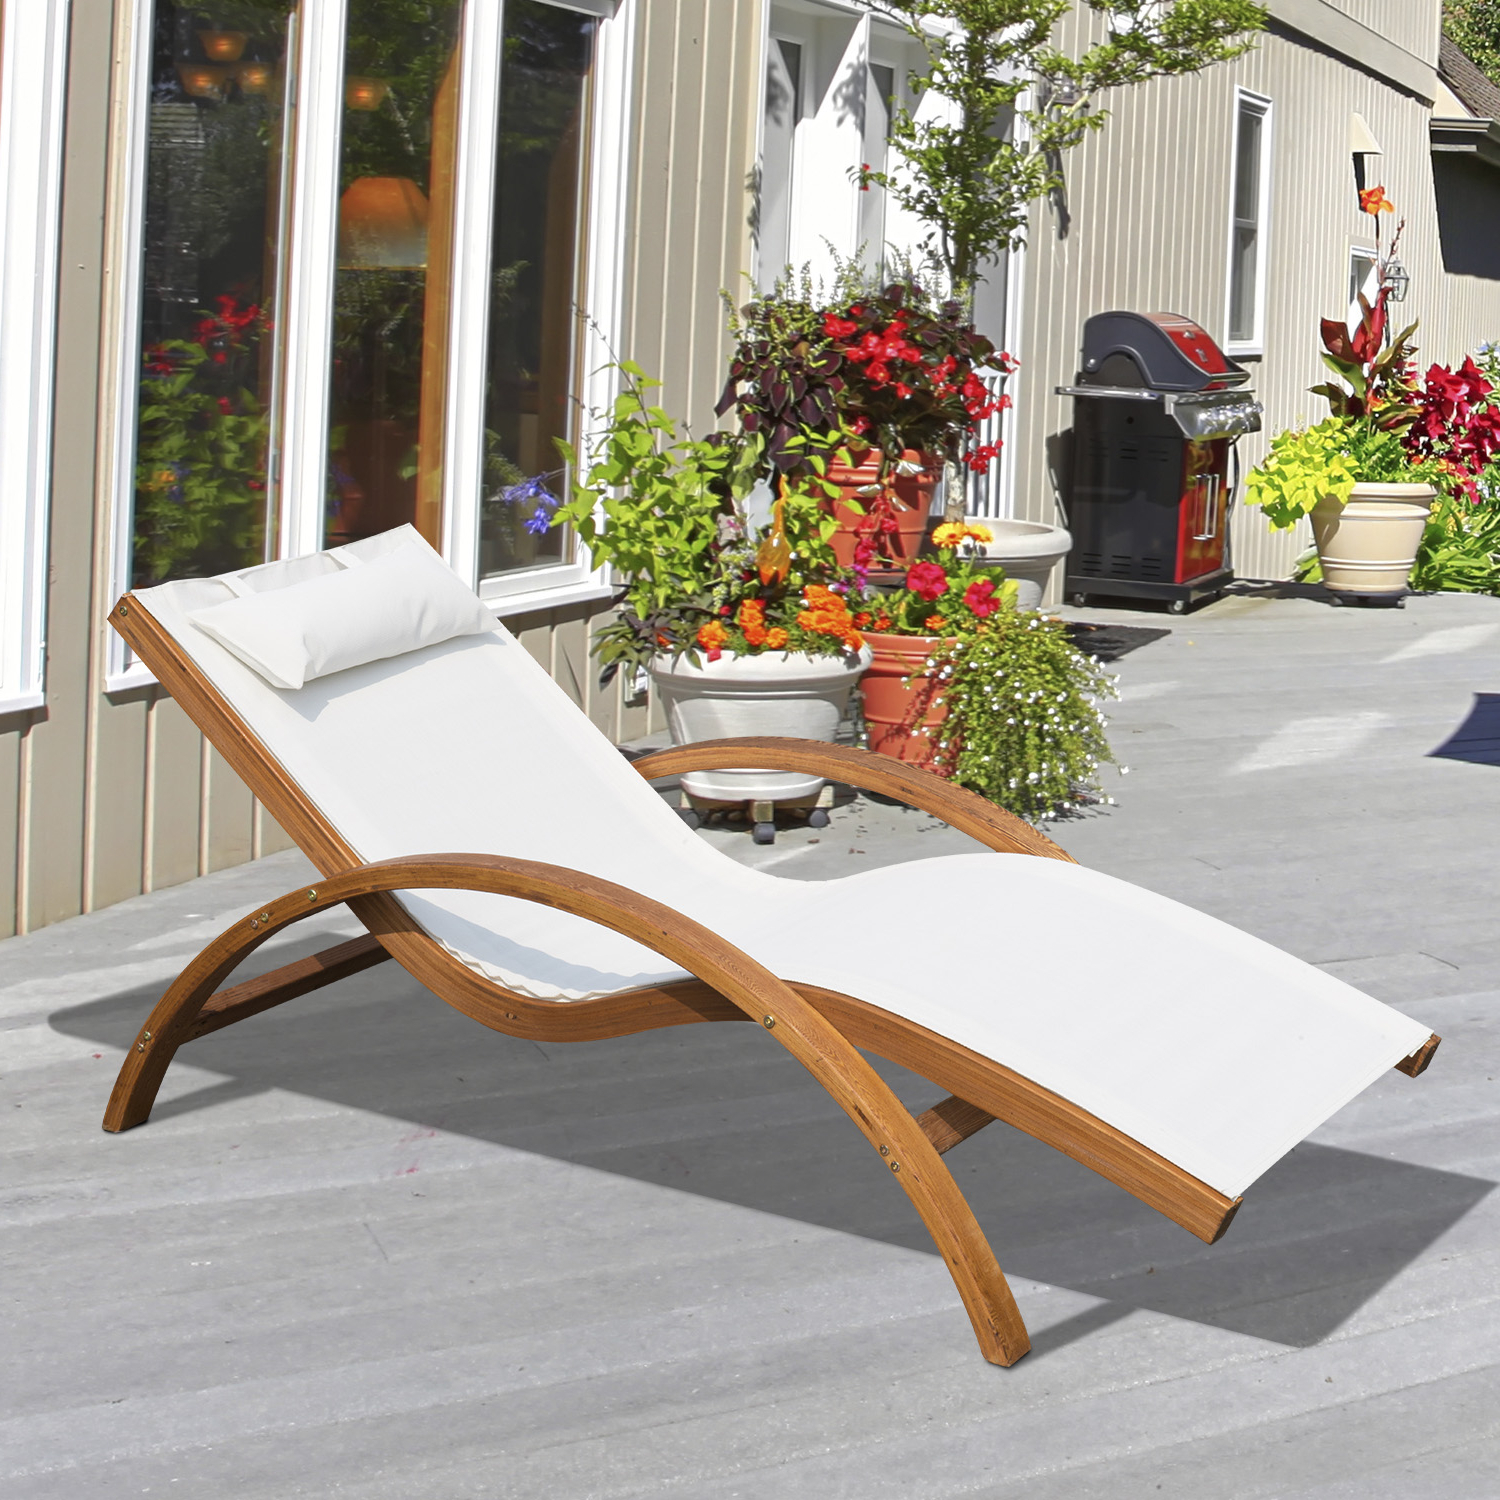 Outsunny Outdoor Wood Sling Chaise Lounge Reclining Garden Mesh Lounger Patio Chair With Headrest Cream Within Well Liked Reclining Sling Chaise Lounges (View 22 of 25)